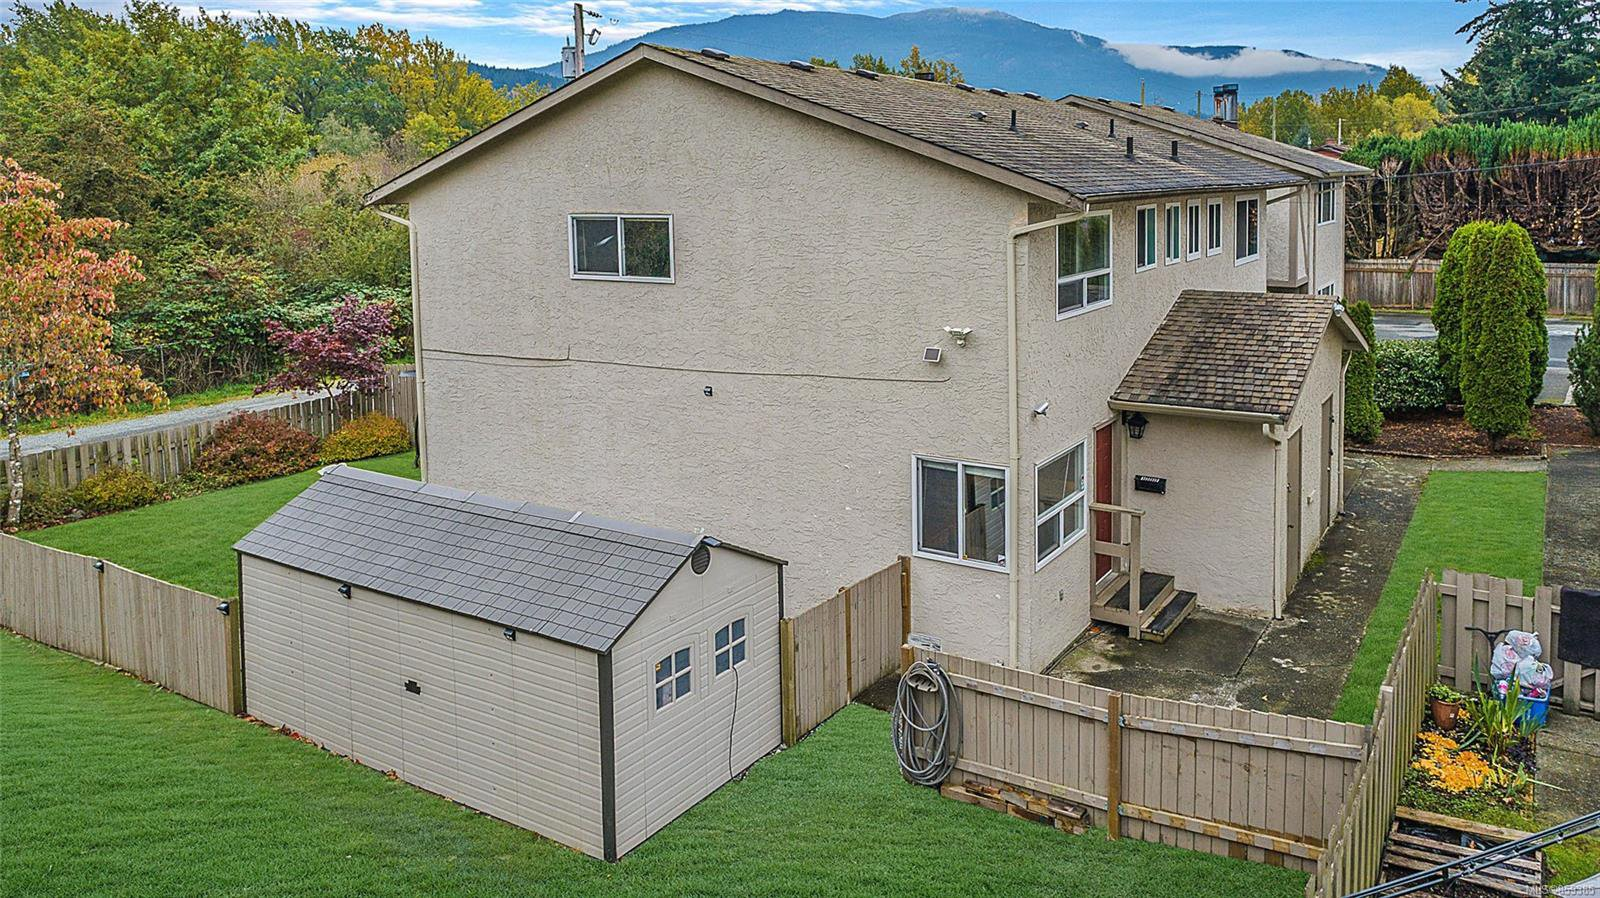 Main Photo: 1598 Fuller St in : Na Central Nanaimo Row/Townhouse for sale (Nanaimo)  : MLS®# 859385